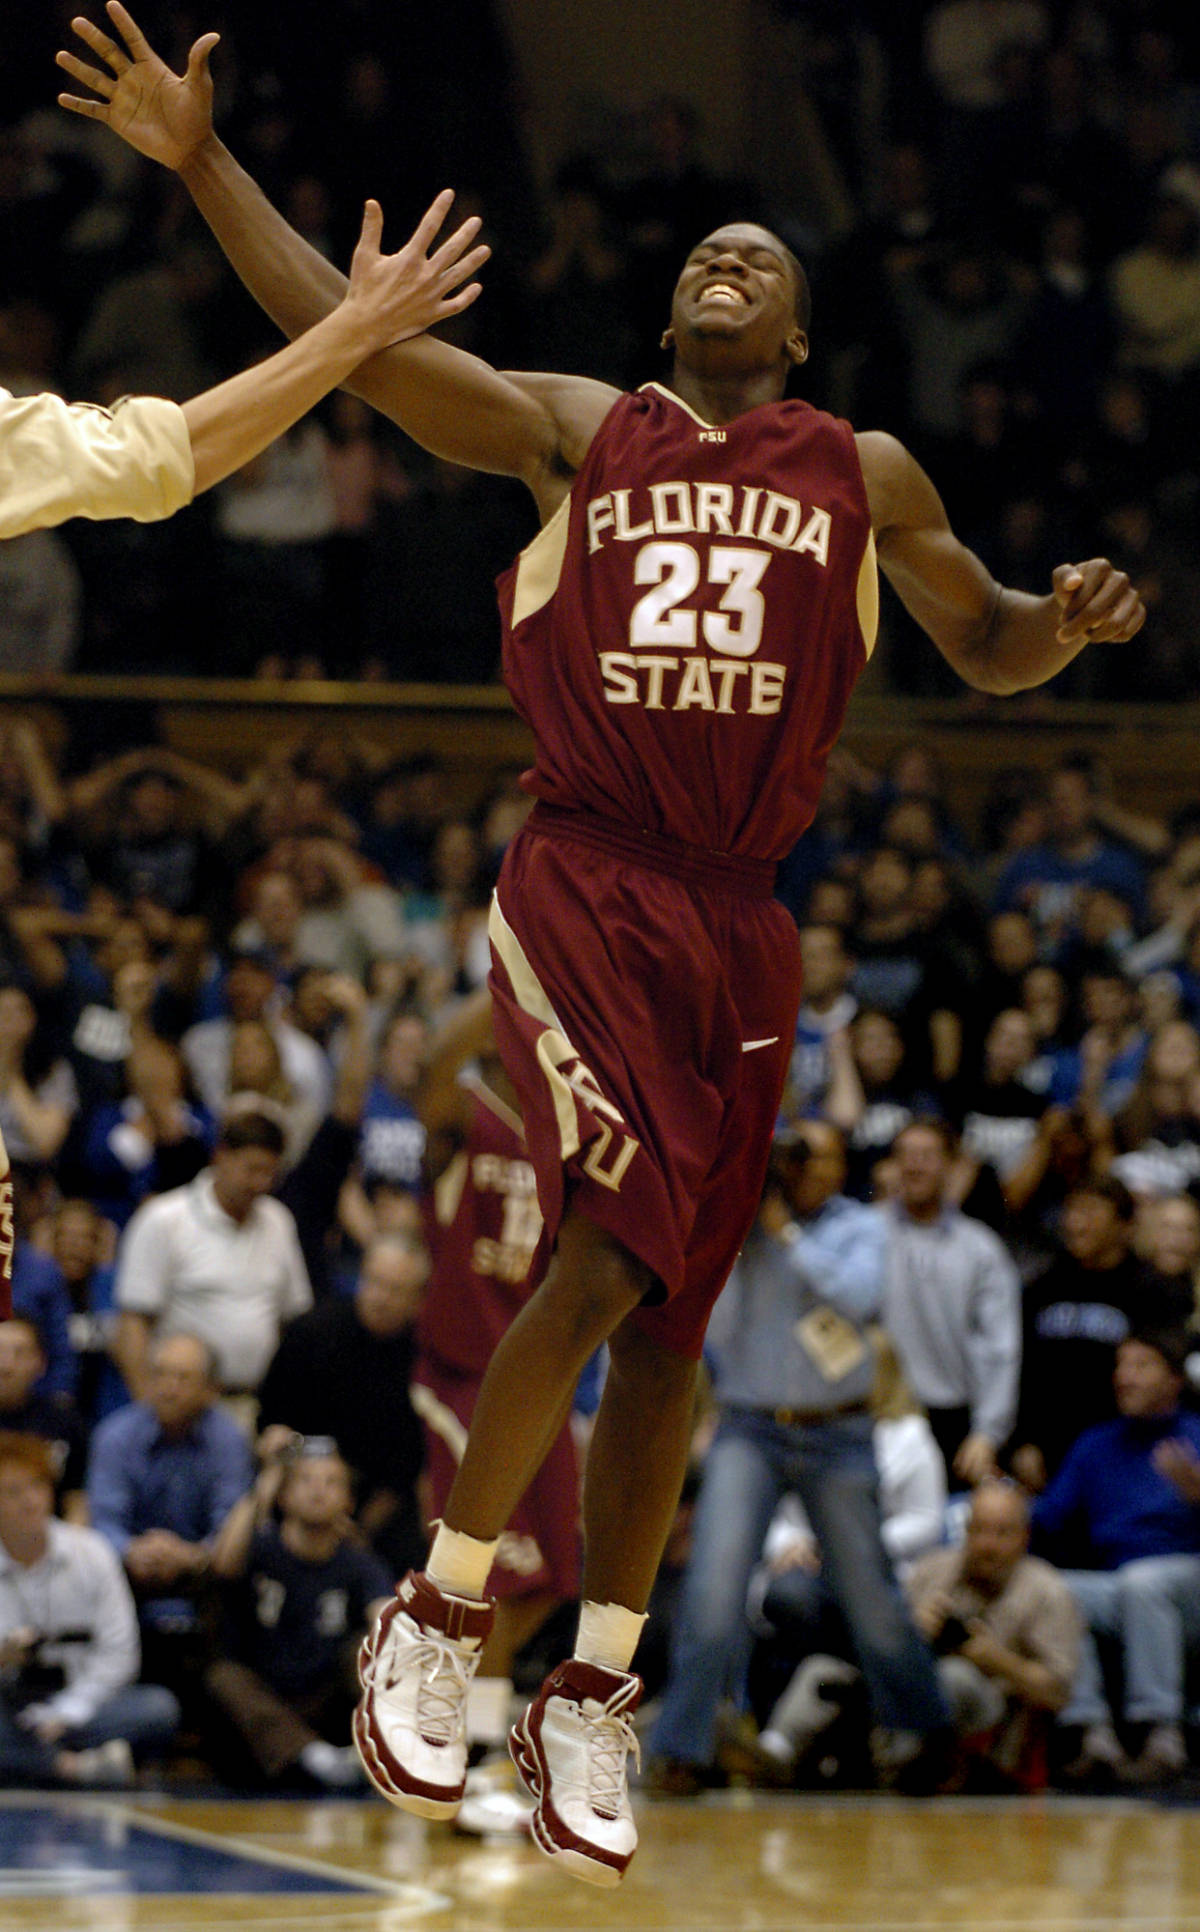 Florida State's Toney Douglas (23) celebrates their 68-67 win over No. 10 Duke at a basketball game in Durham, N.C., on Sunday, Feb. 4, 2007. (AP Photo/Sara D. Davis)